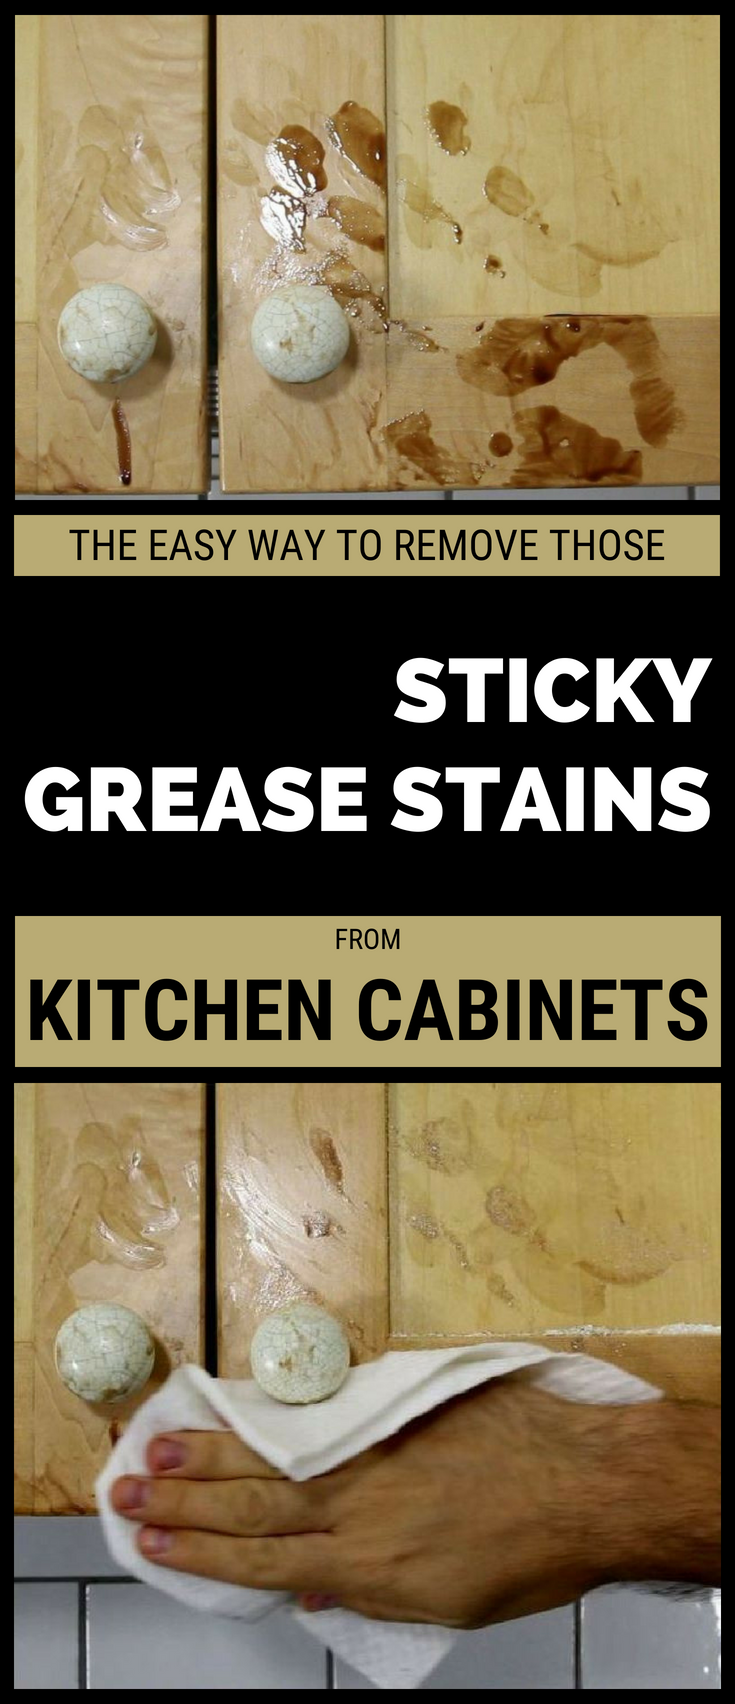 The Easy Way To Remove Those Sticky Grease Stains From